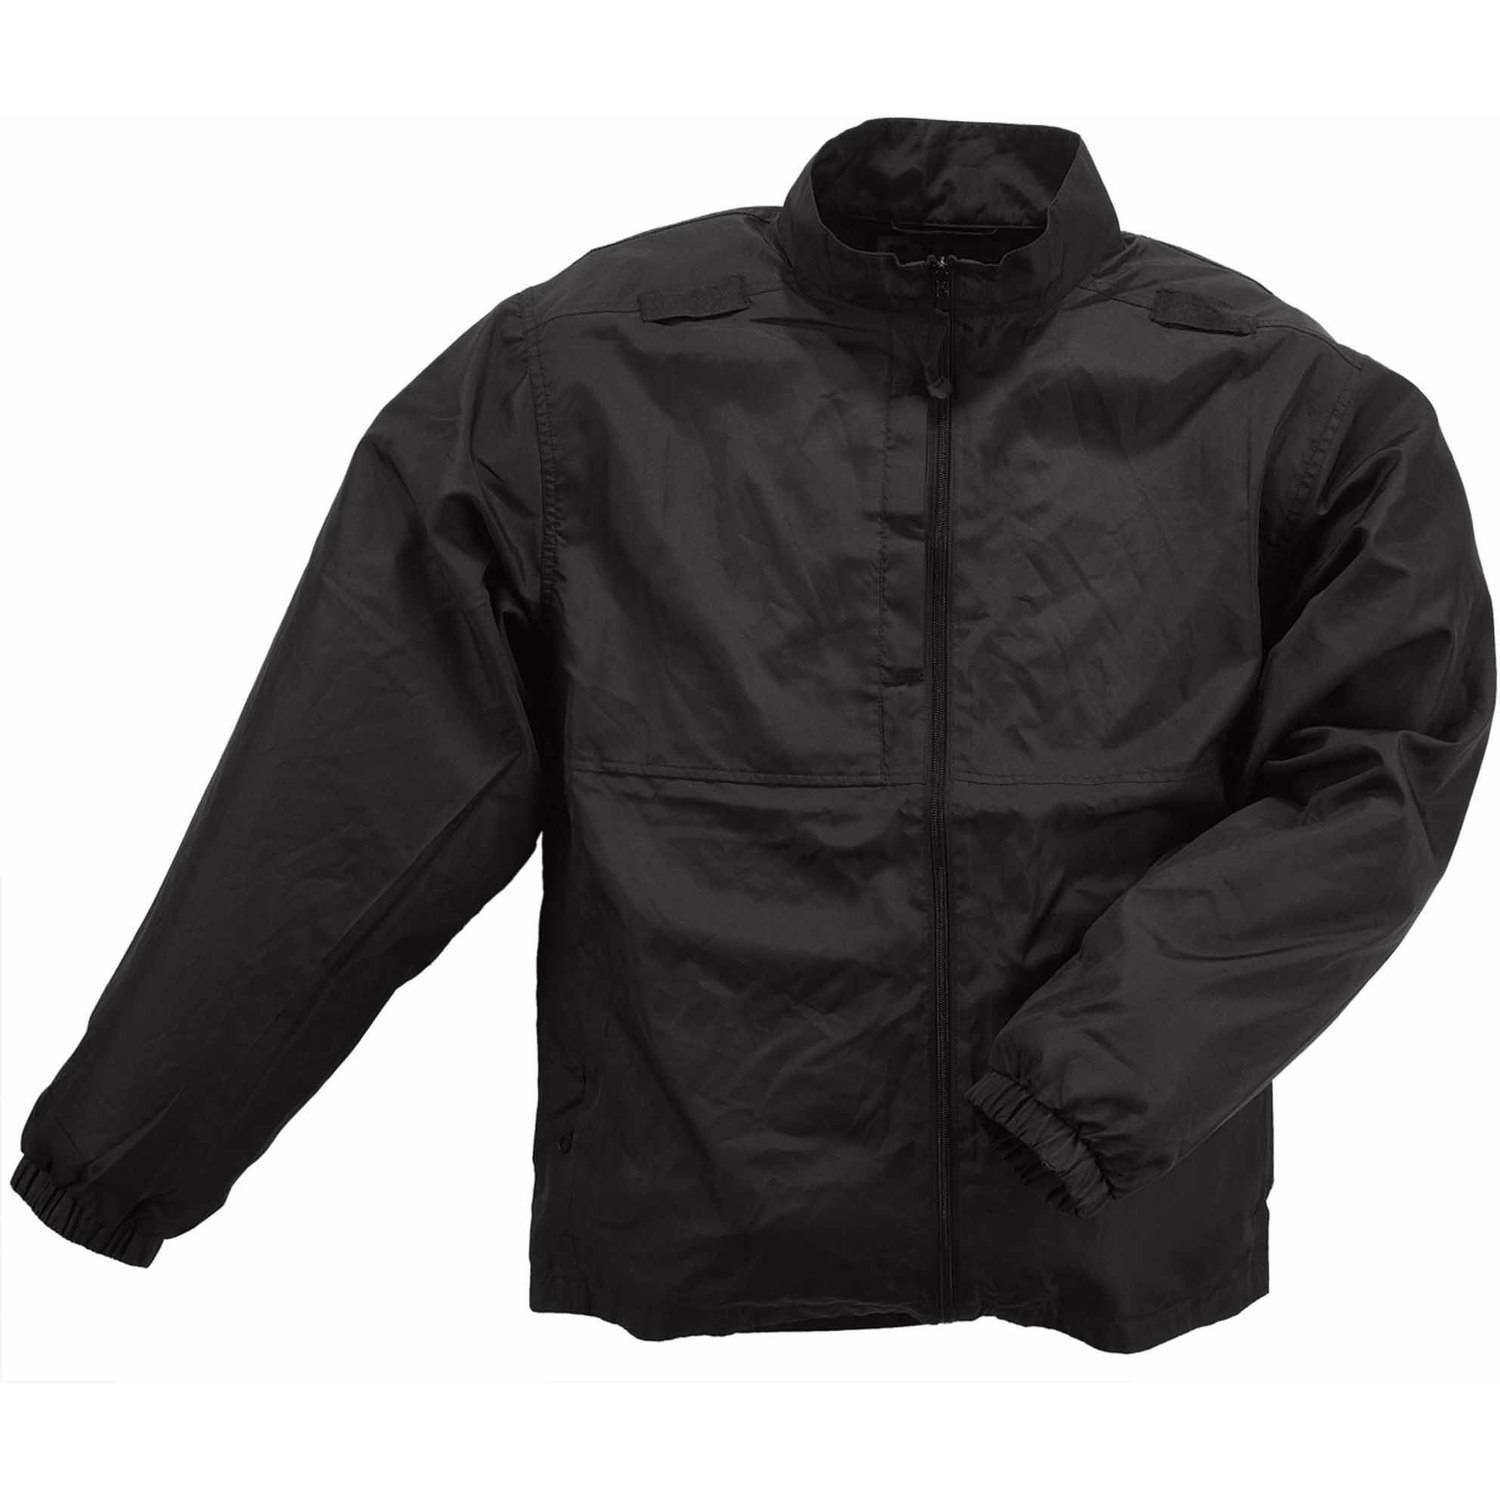 5.11 Tactical Men Packable Jacket, Black, Large thumbnail